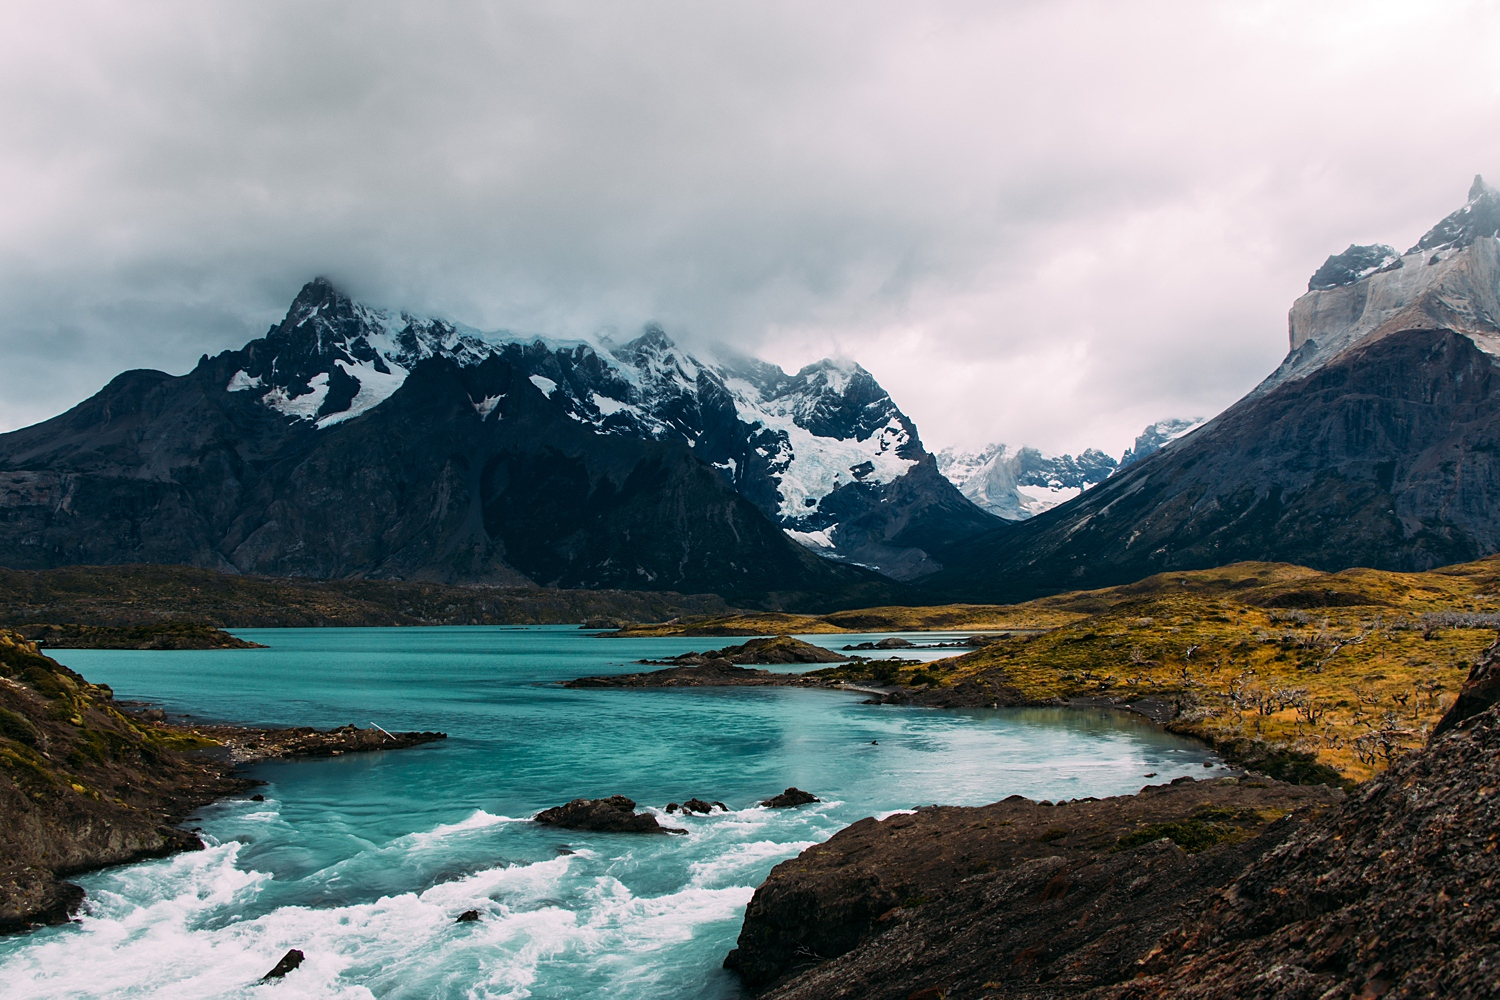 PATAGONIA  The dream. Patagonia is home to some of the most unique and exotic looking mountains in the world. Unlimited hiking and epic views that serve for incredible photo backdrops.